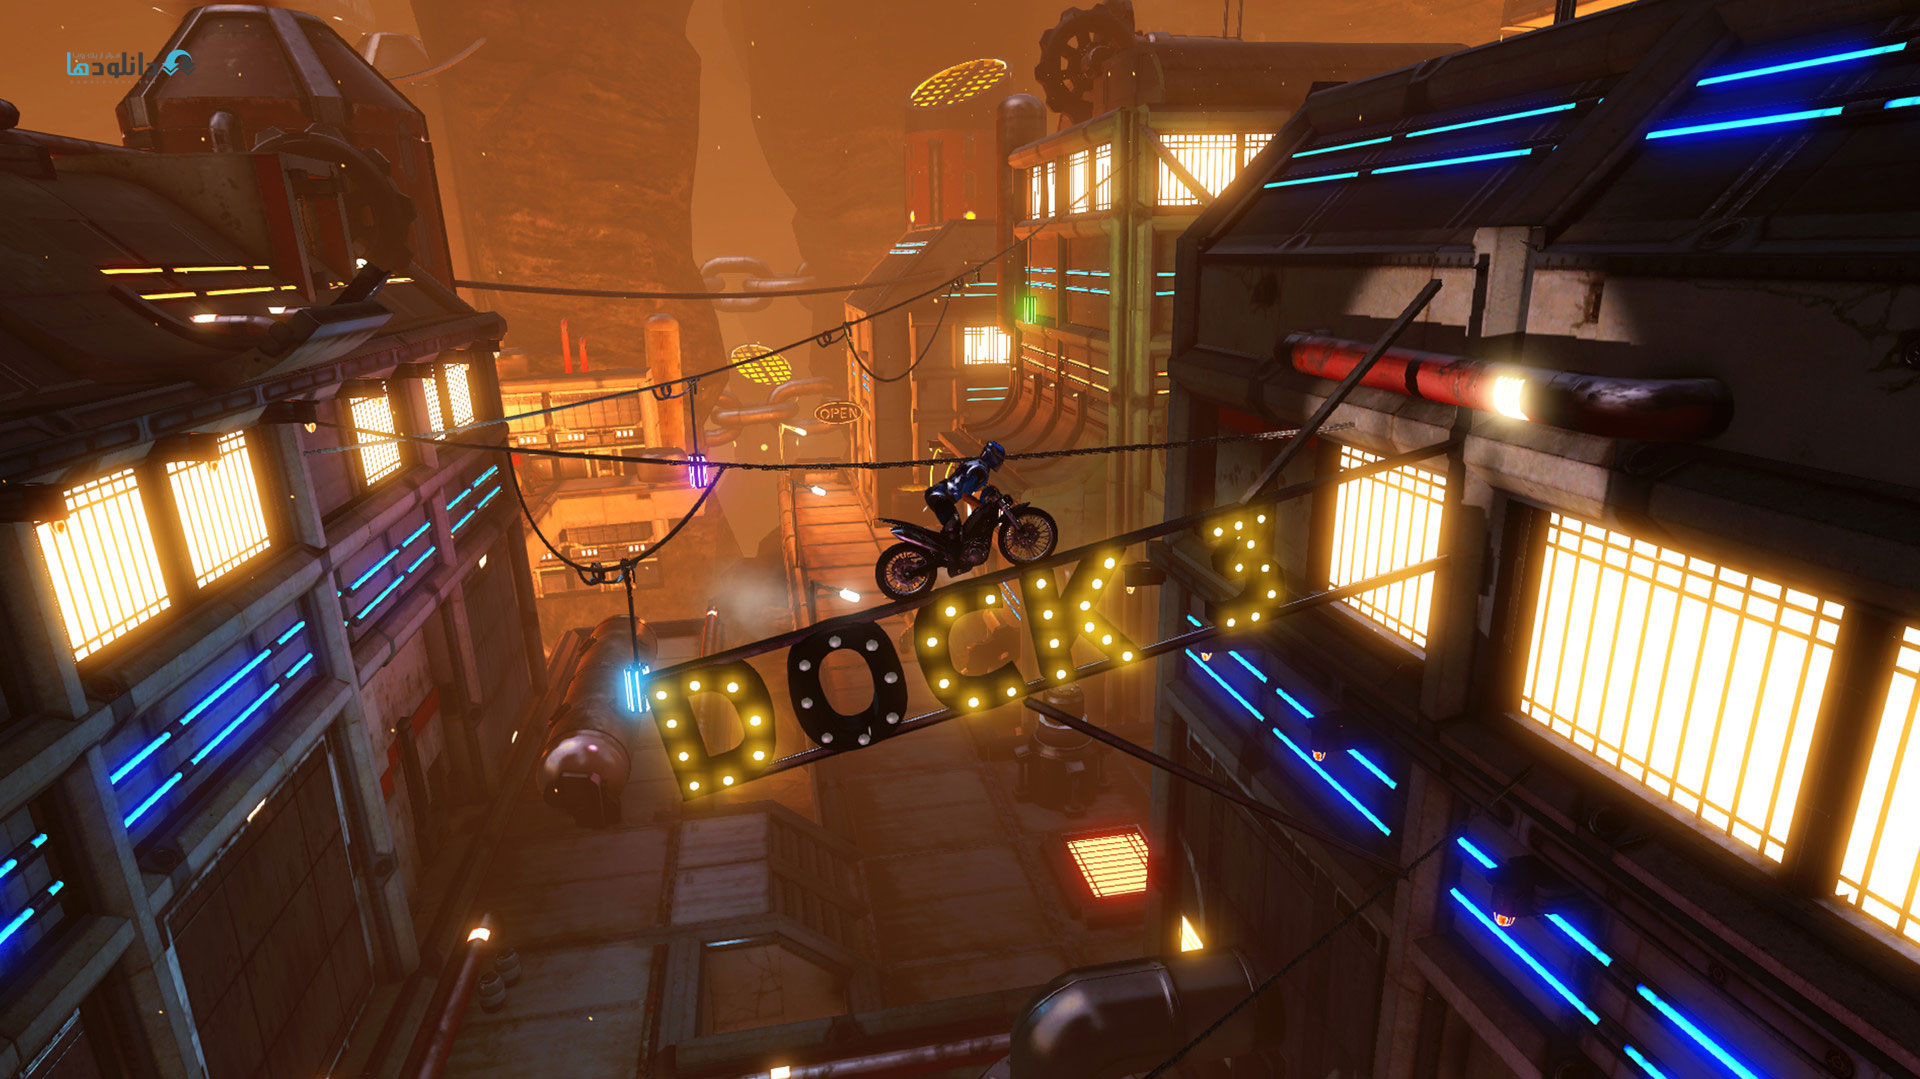 http://dl5.downloadha.com/hosein/Game/January%202015/30/Trials-Fusion-Fire-in-the-Deep-screenshots-02-large.jpg